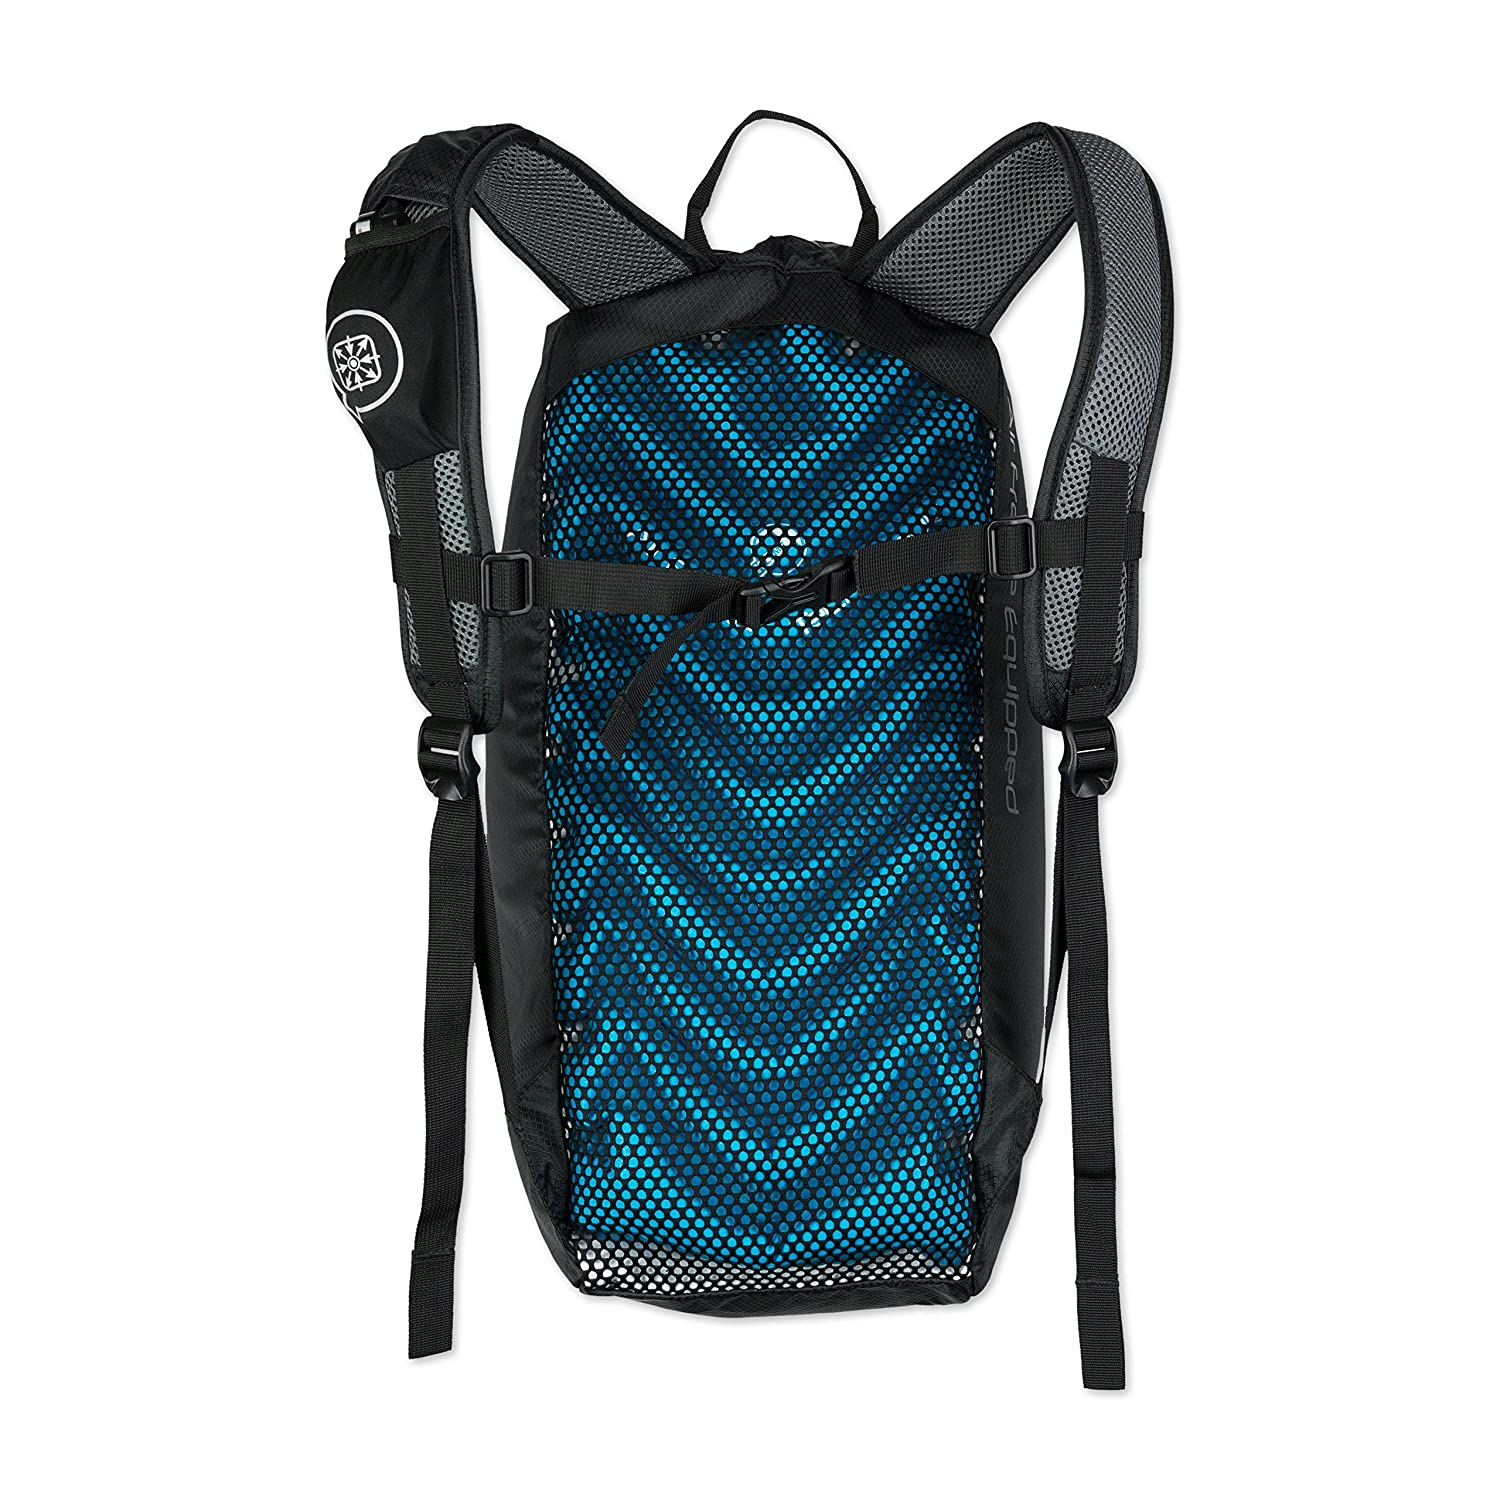 Amazon.com : Klymit Stash 18 Air Frame Day Backpack, Black : Sports & Outdoors